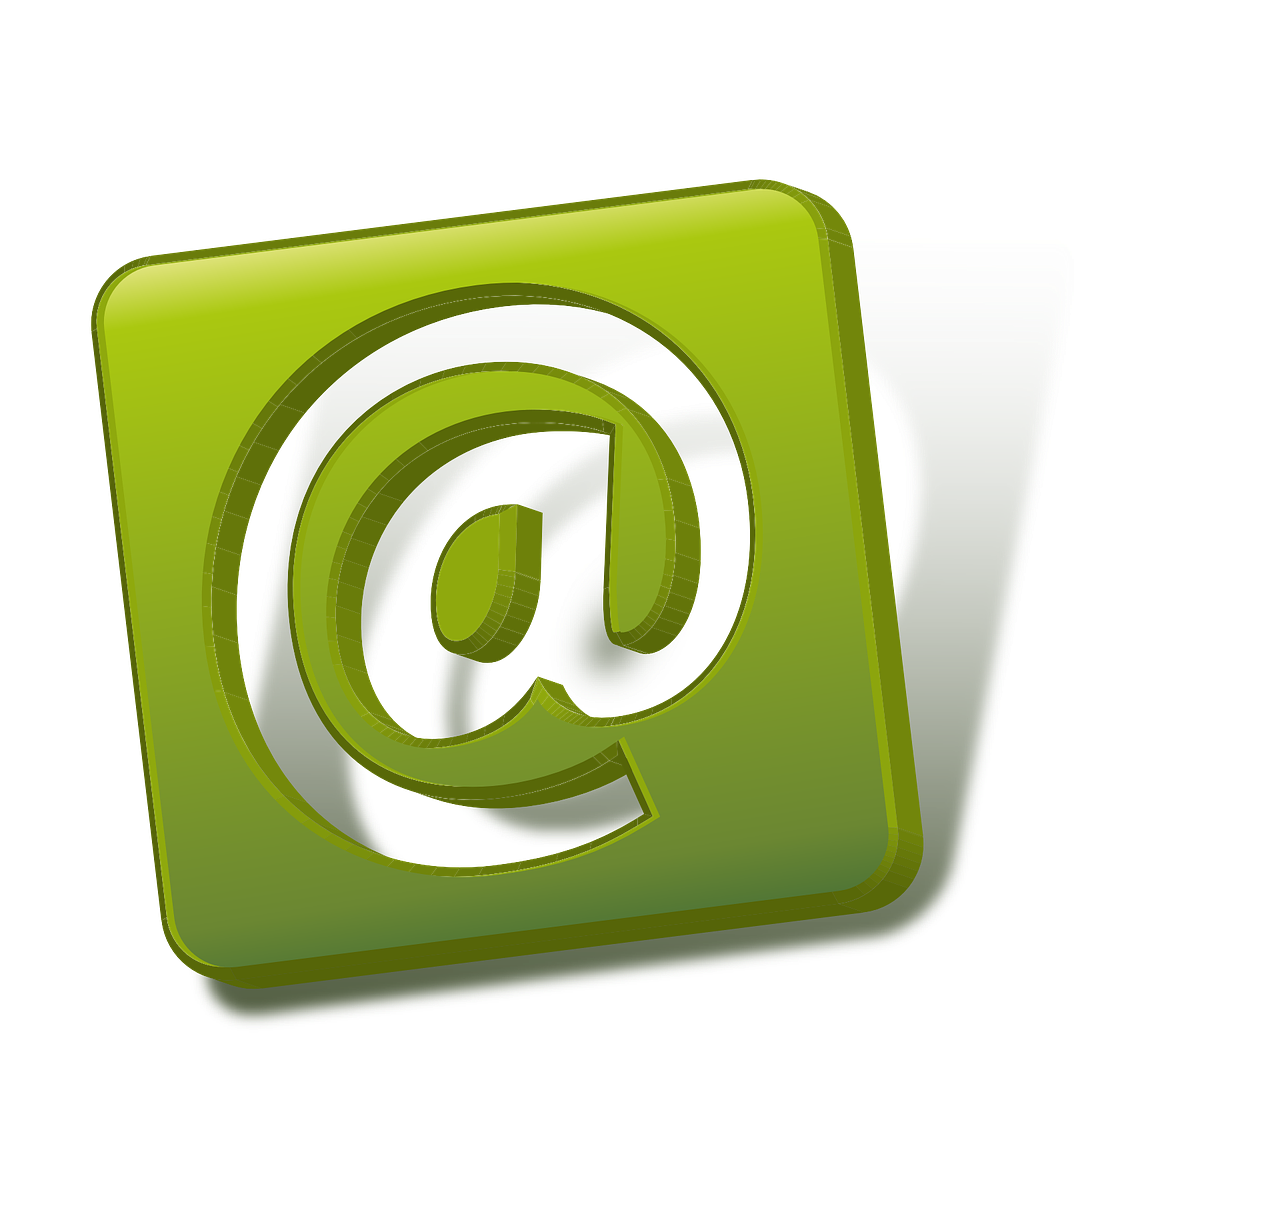 Mail At Sign Computer Message Icon  - guilaine / Pixabay